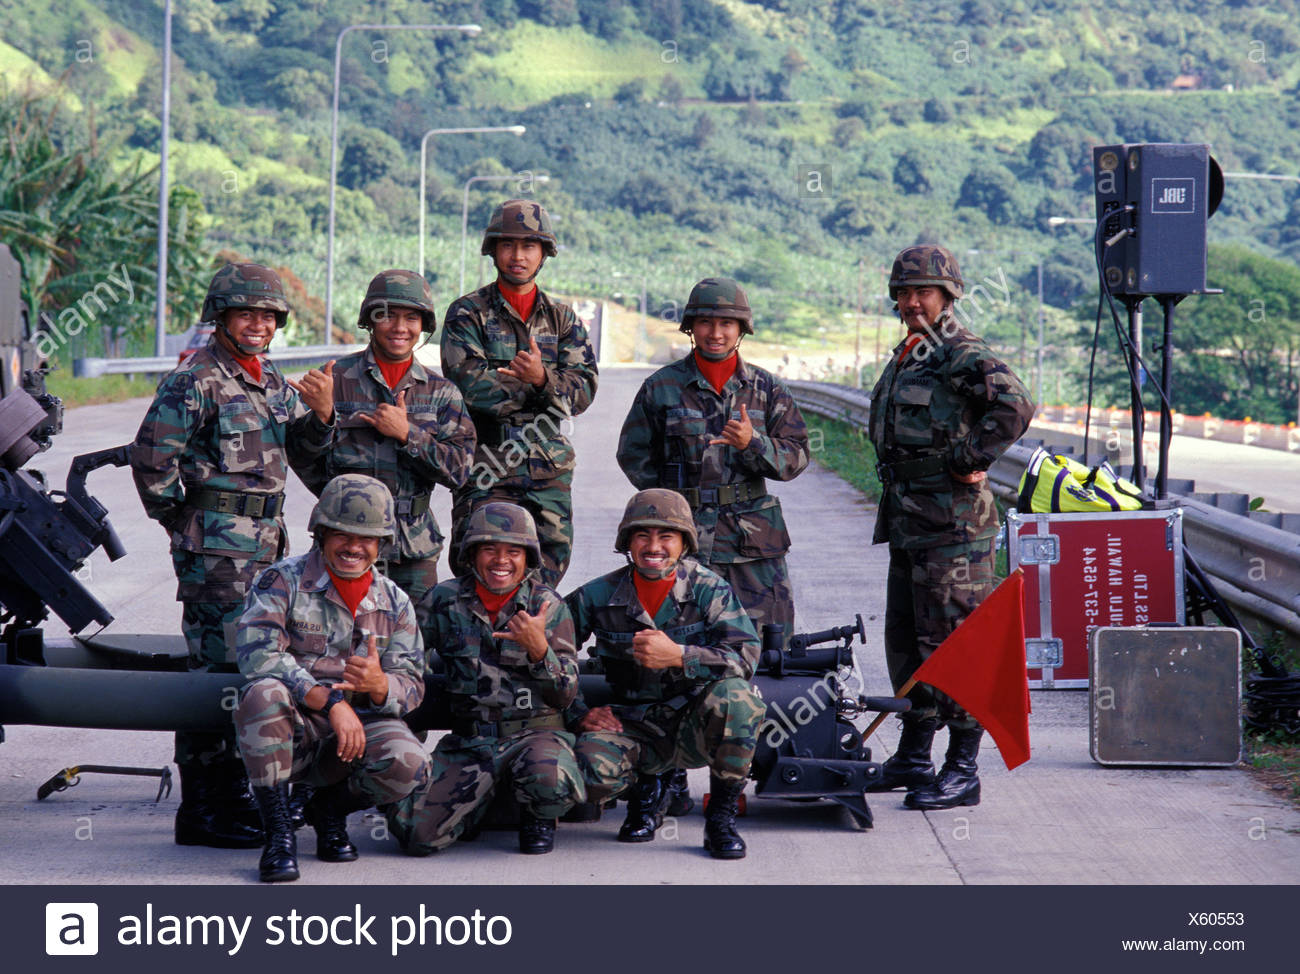 National Guard troops (Alpha Battery) at the H-3 Interstate Highway, providing protection during the opening marathon run - Stock Image